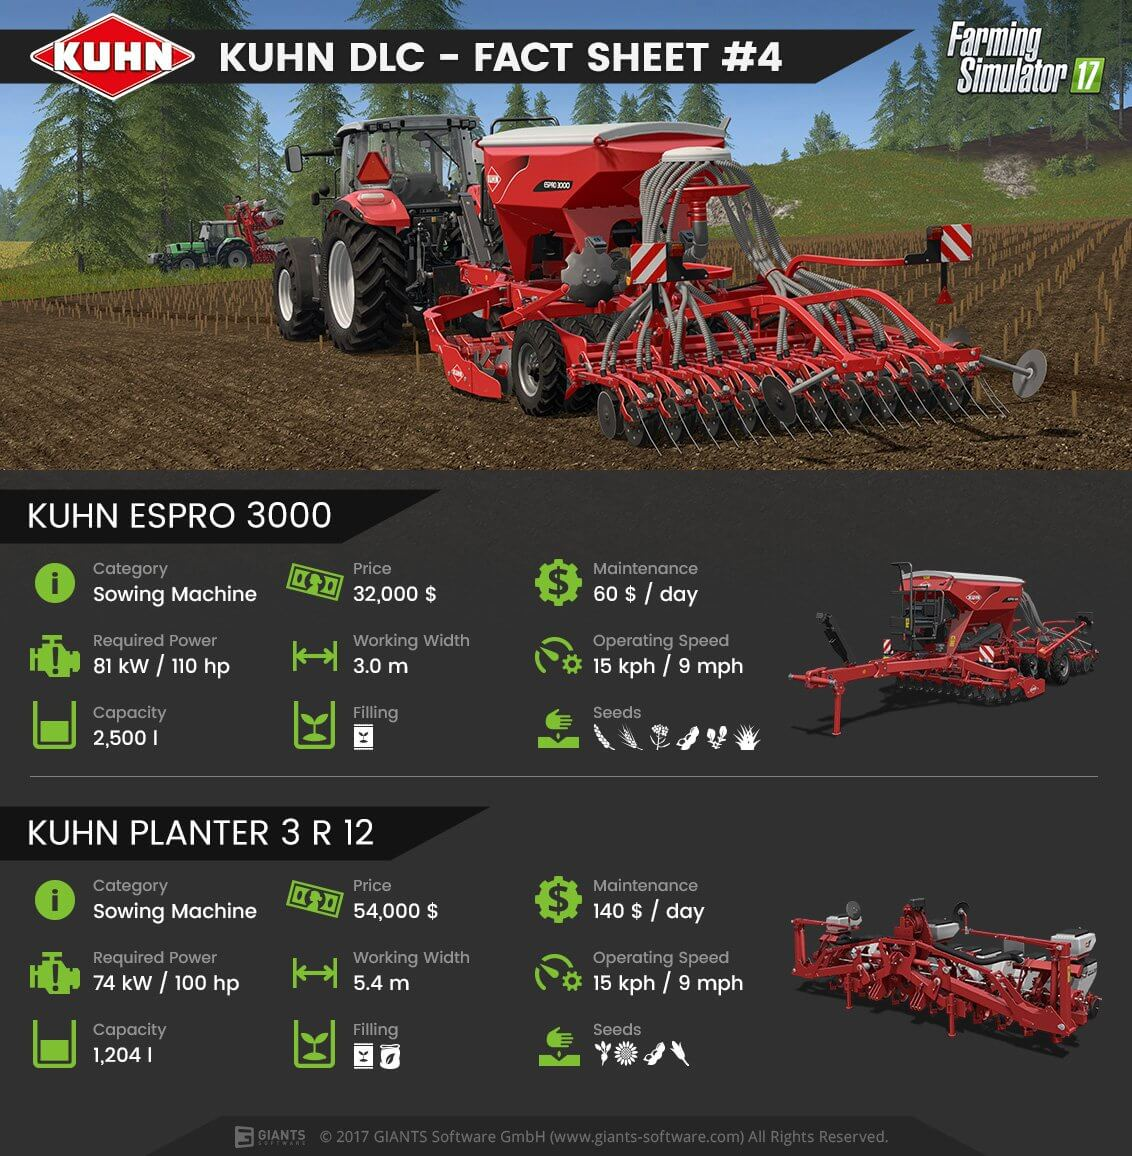 Farming Simulator 17's KUHN DLC Teased